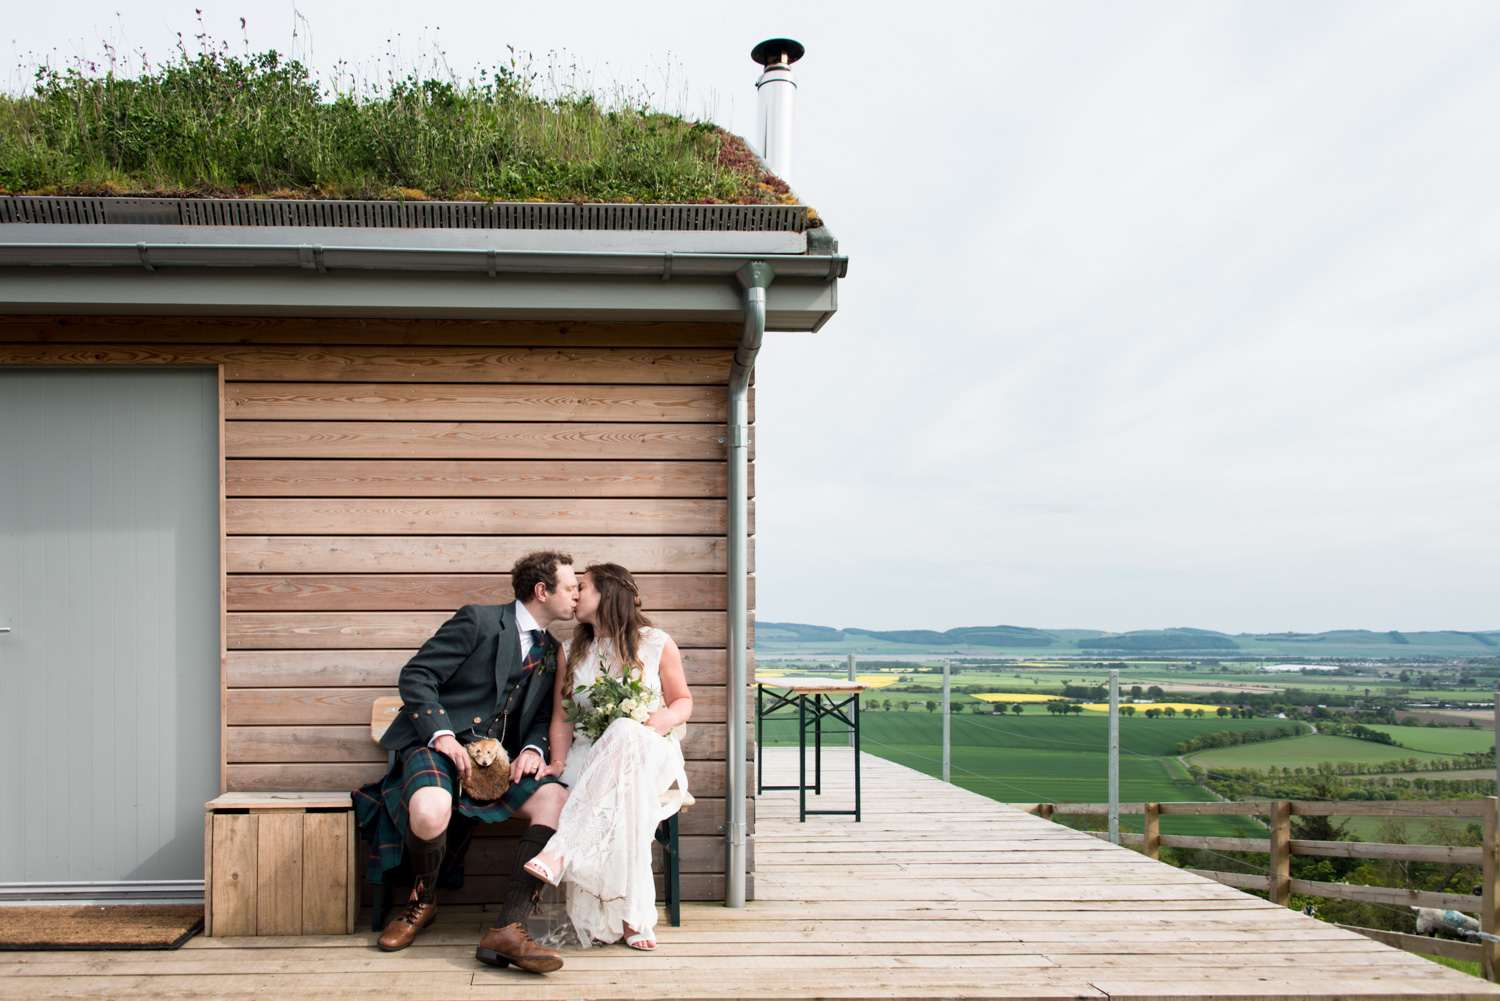 Documentary Wedding Photographer Edinburgh - Guardswall Farm Cabin